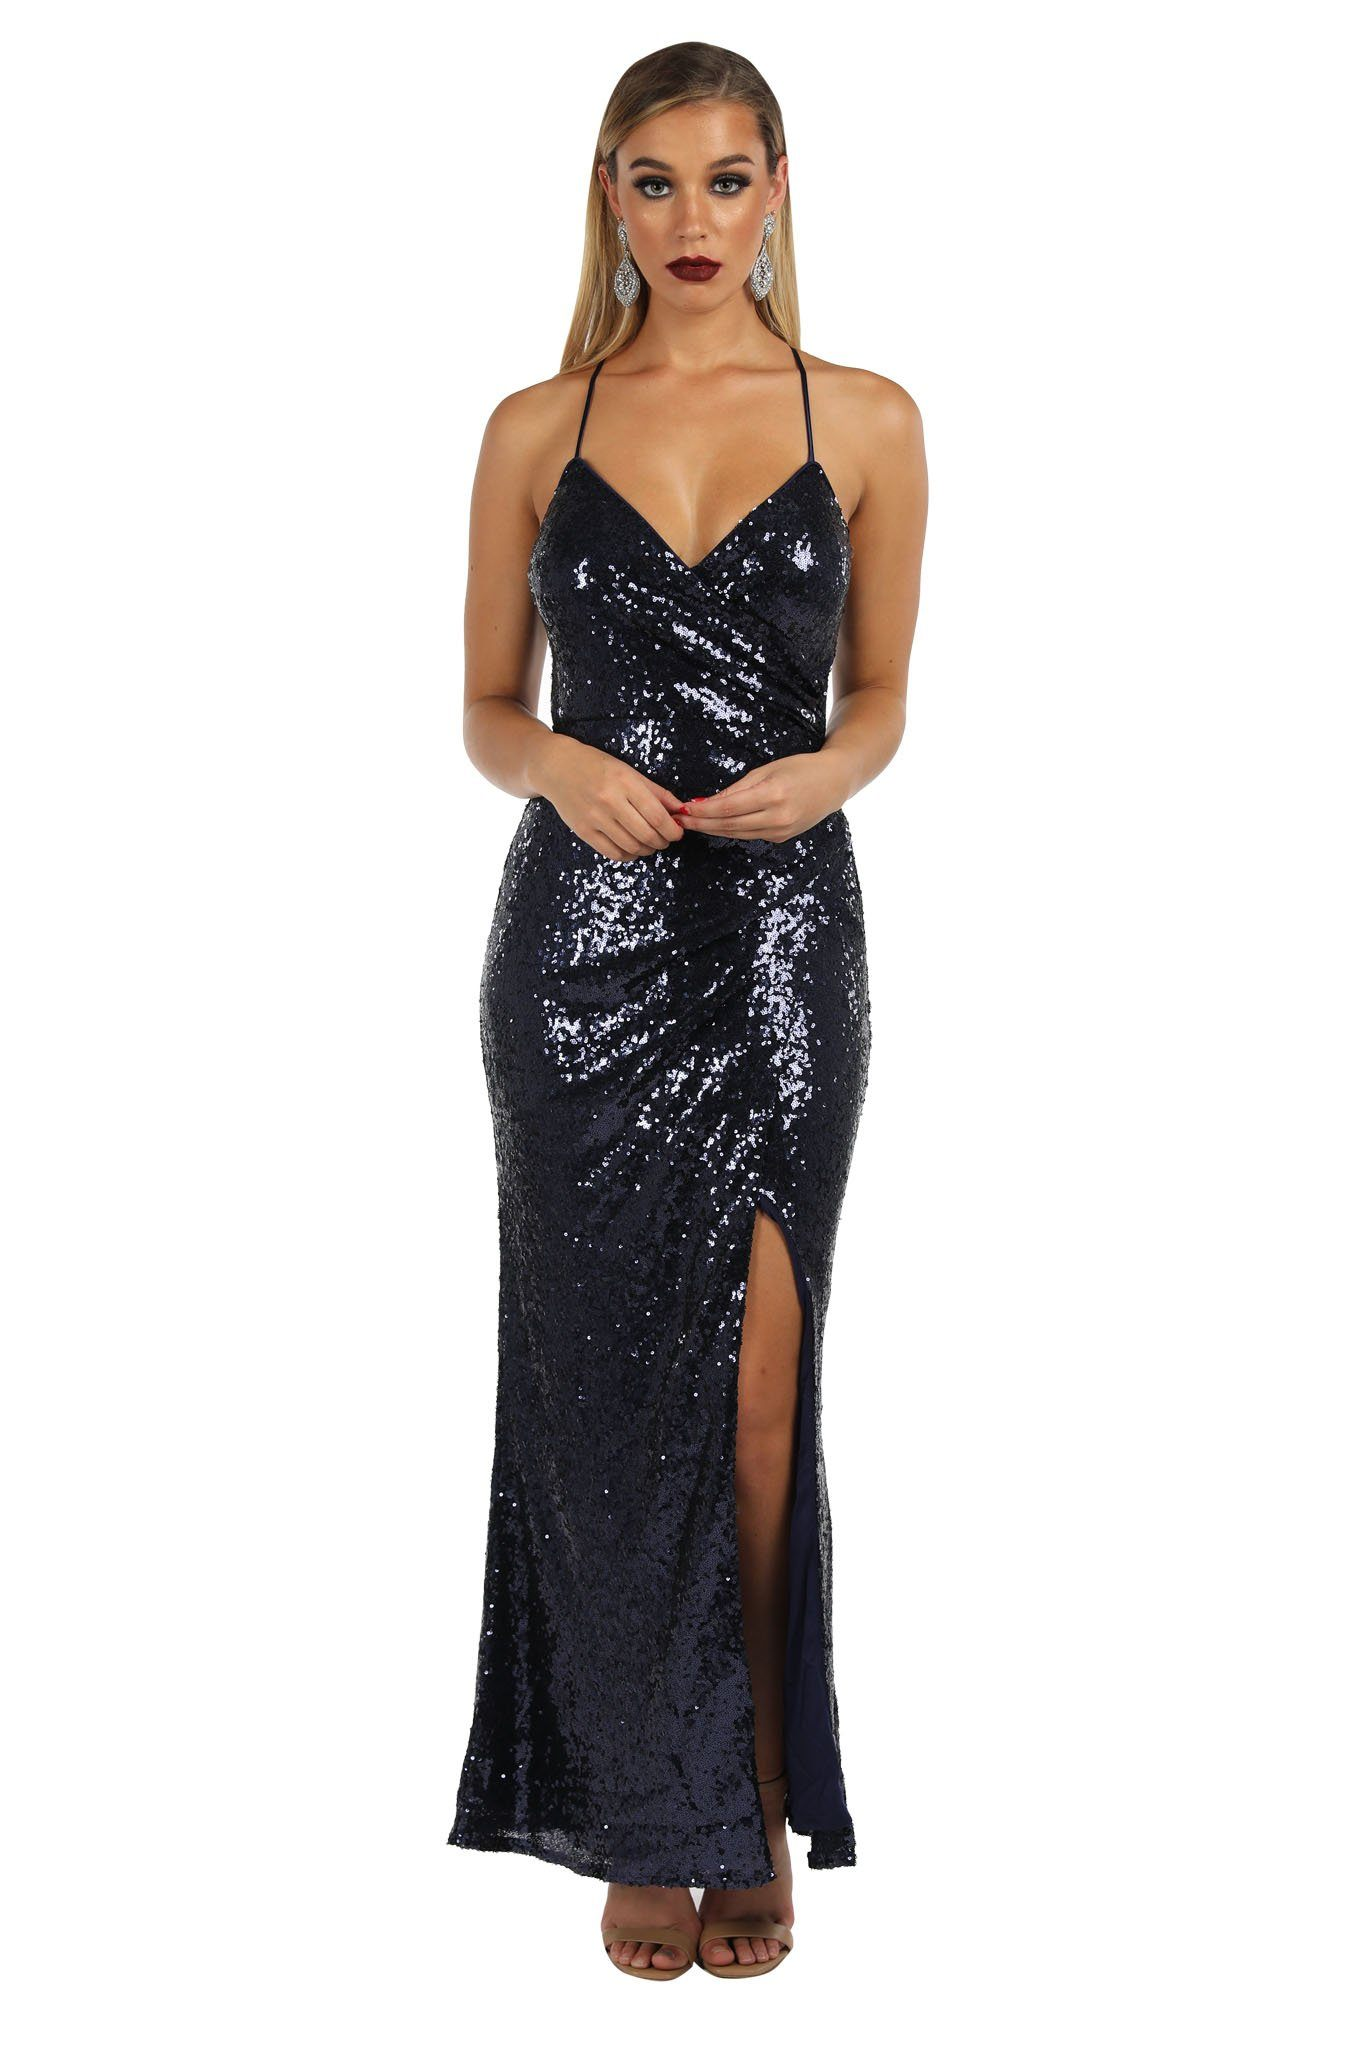 Matte deep navy blue colored sleeveless sequinned maxi dress with faux wrap design, v neckline, front split and adjustable crisscross back thin straps